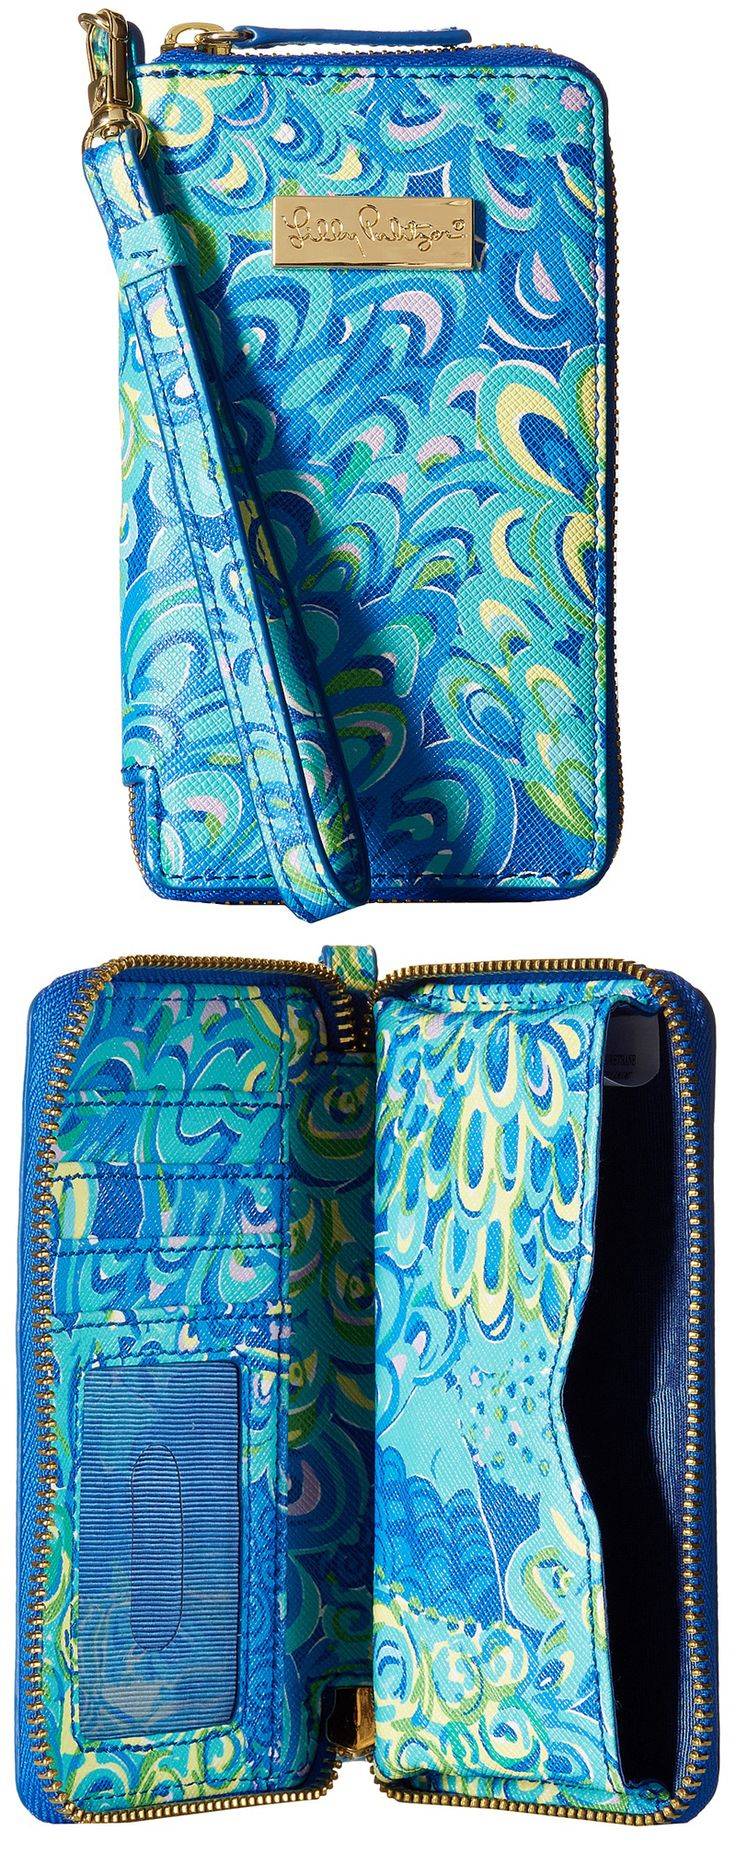 Lilly Pulitzer Tiki Palm iPhone 6 Case